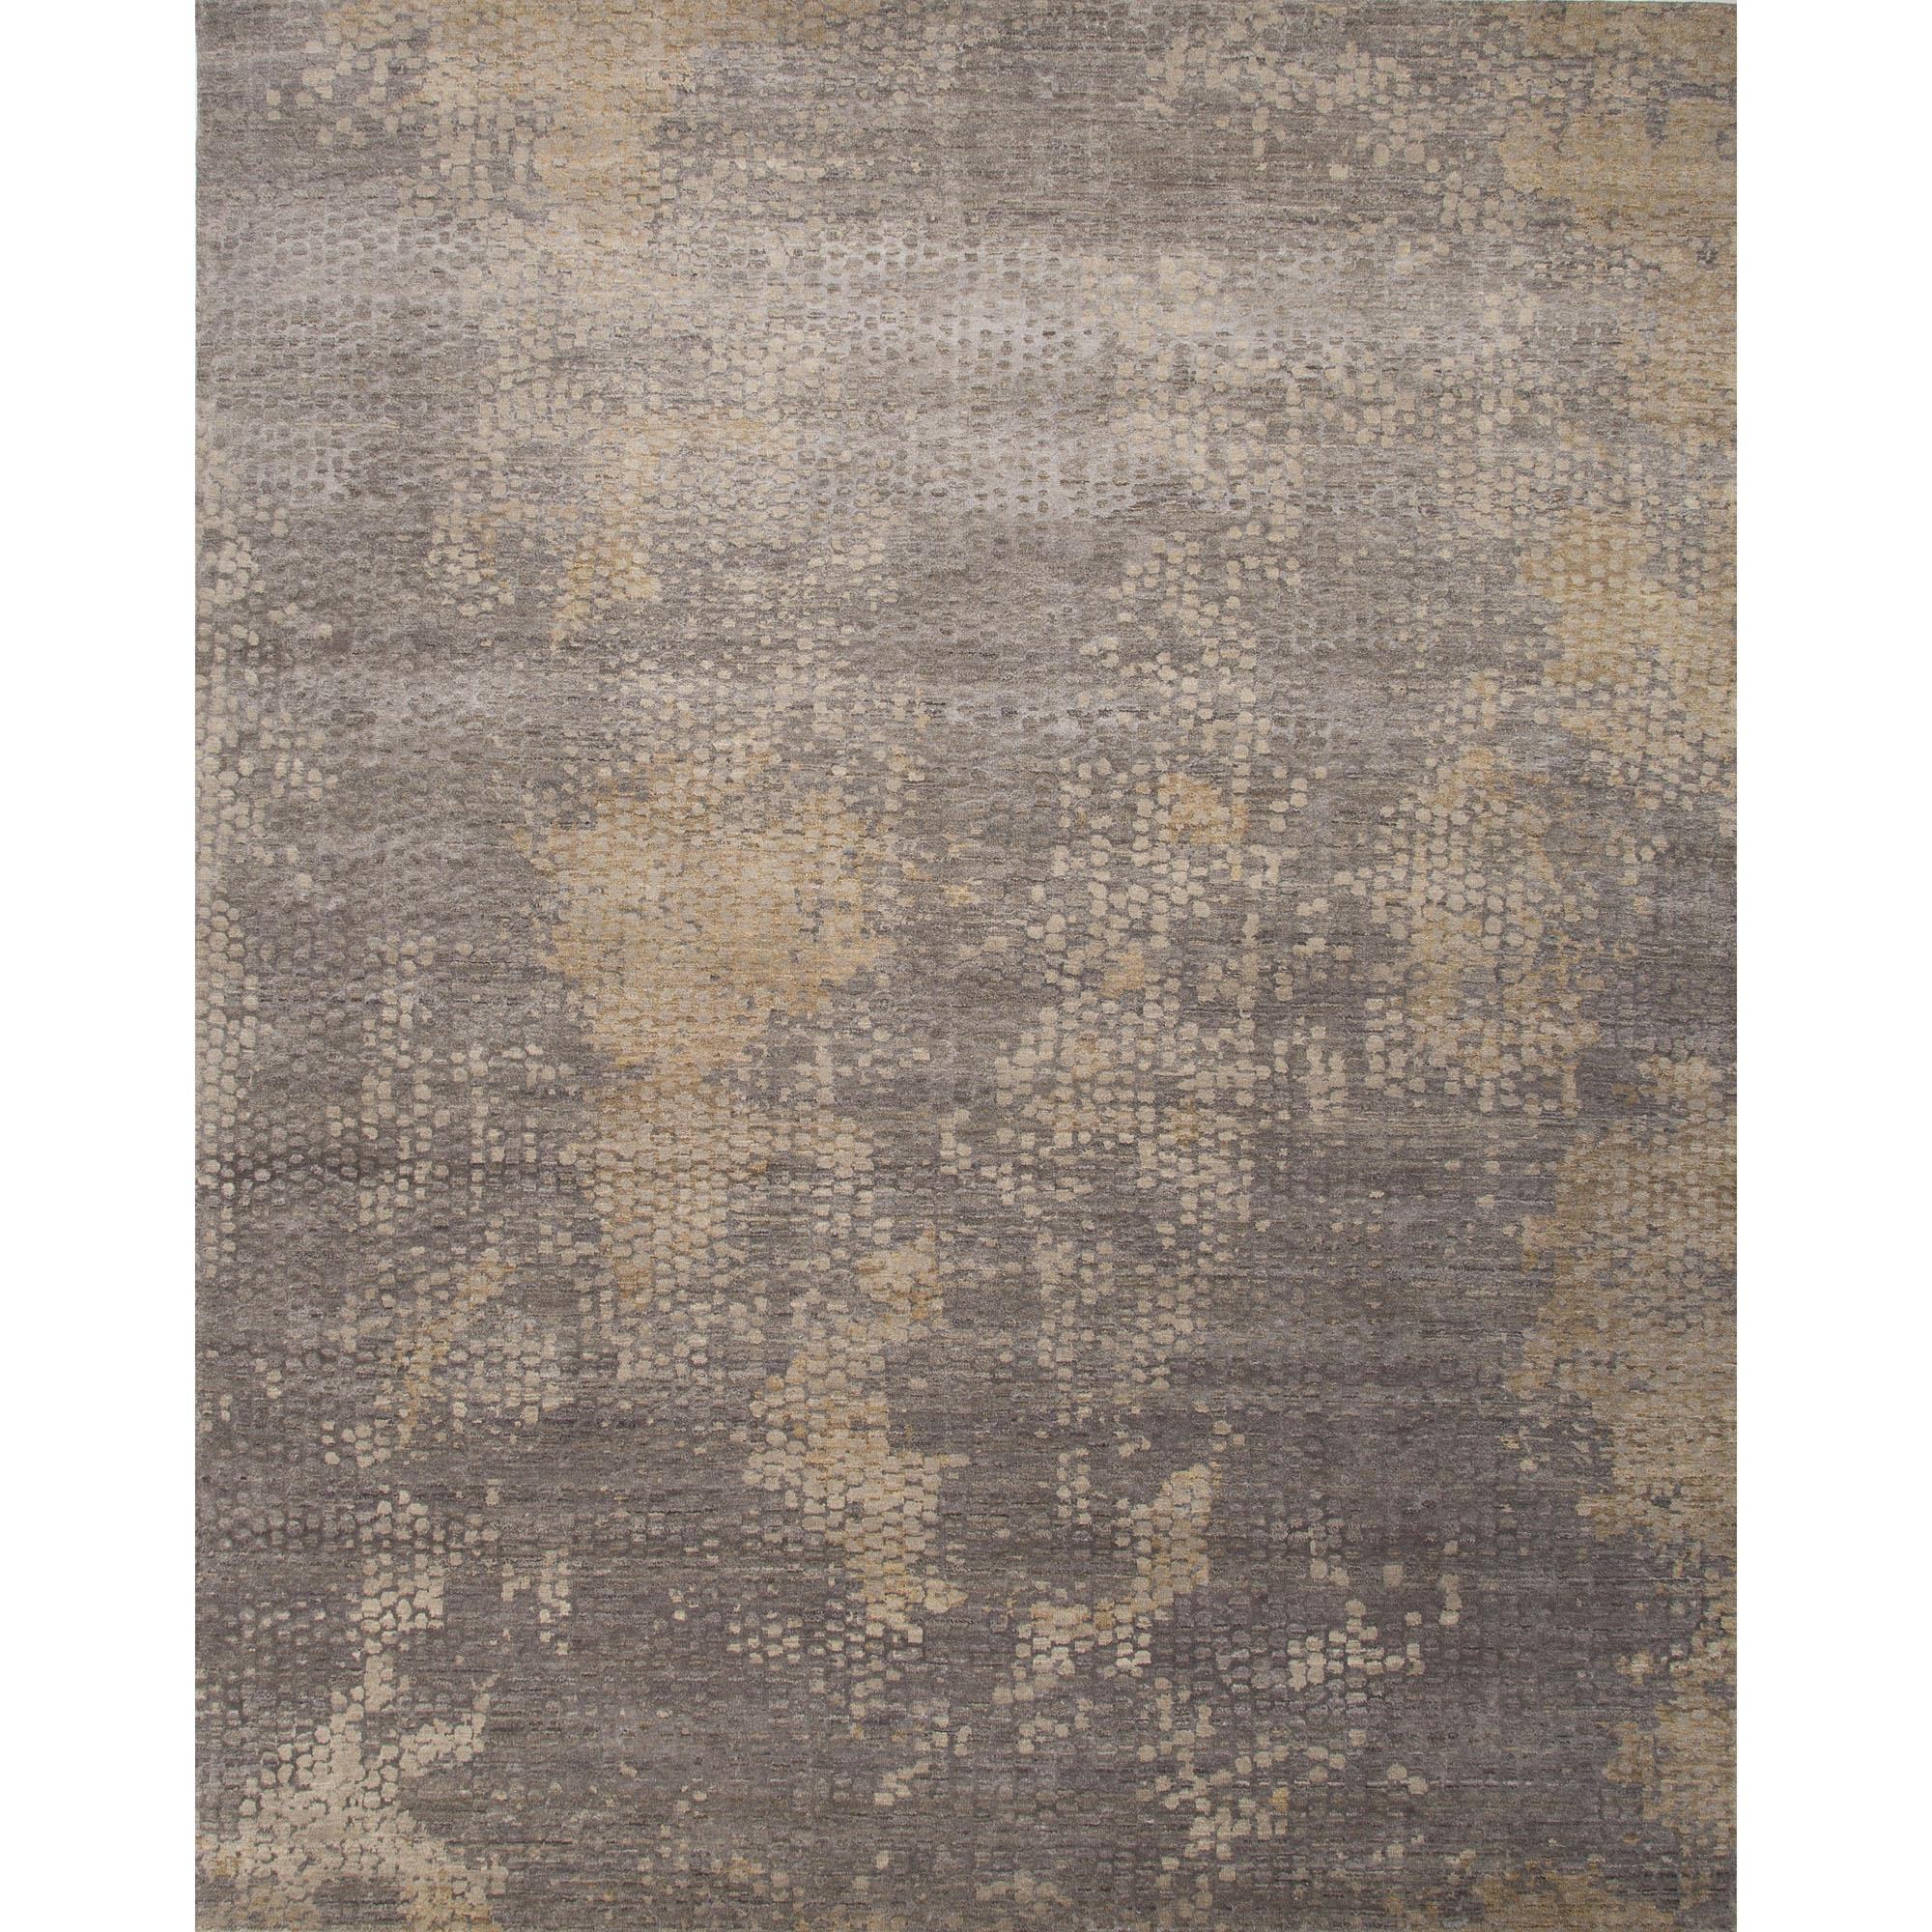 JAIPUR Rugs Chaos Theory By Kavi 5.6 x 8 Rug - Item Number: RUG116982